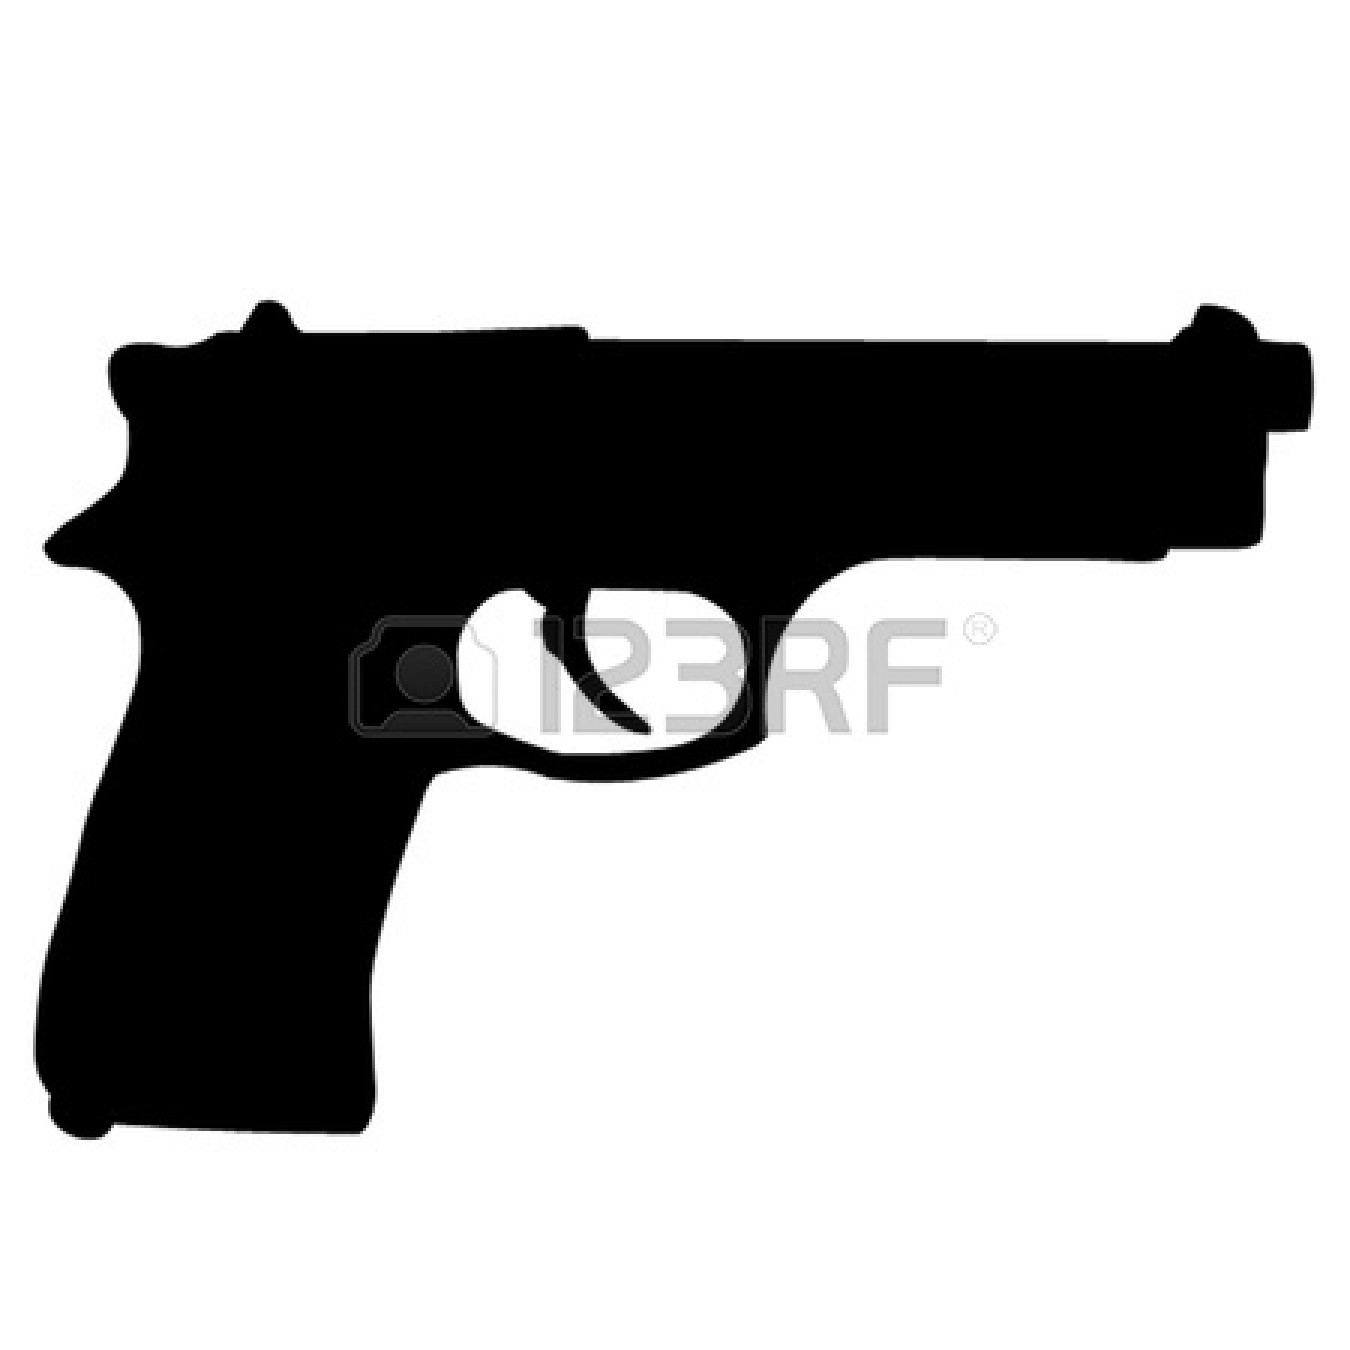 Guns clipart pistol. Best of gun design